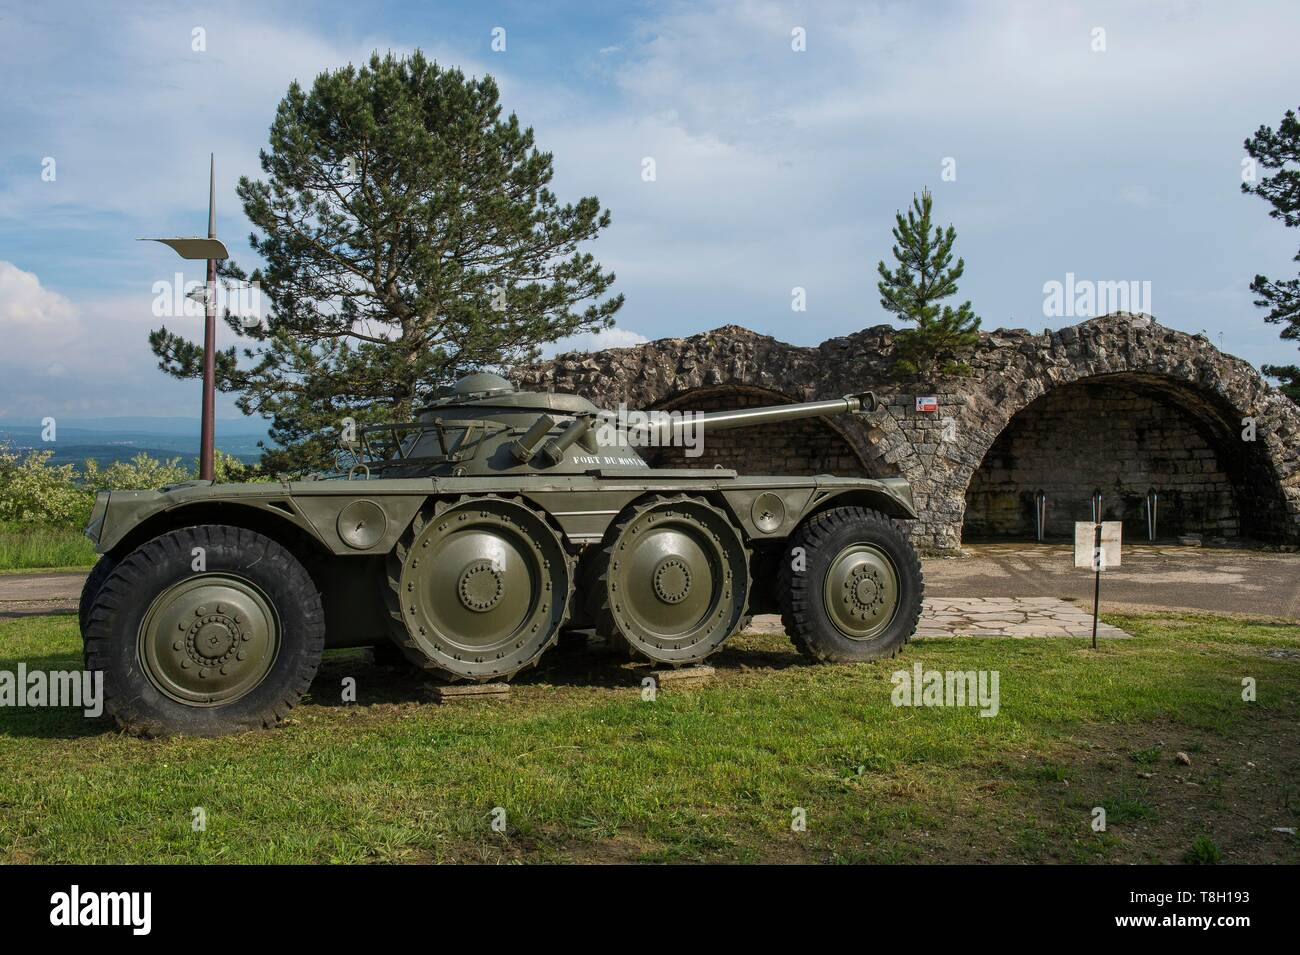 France, Doubs, Montbeliard, the veloroute, euro bike 6, the Fort of Mount Bart, armored exhibition - Stock Image